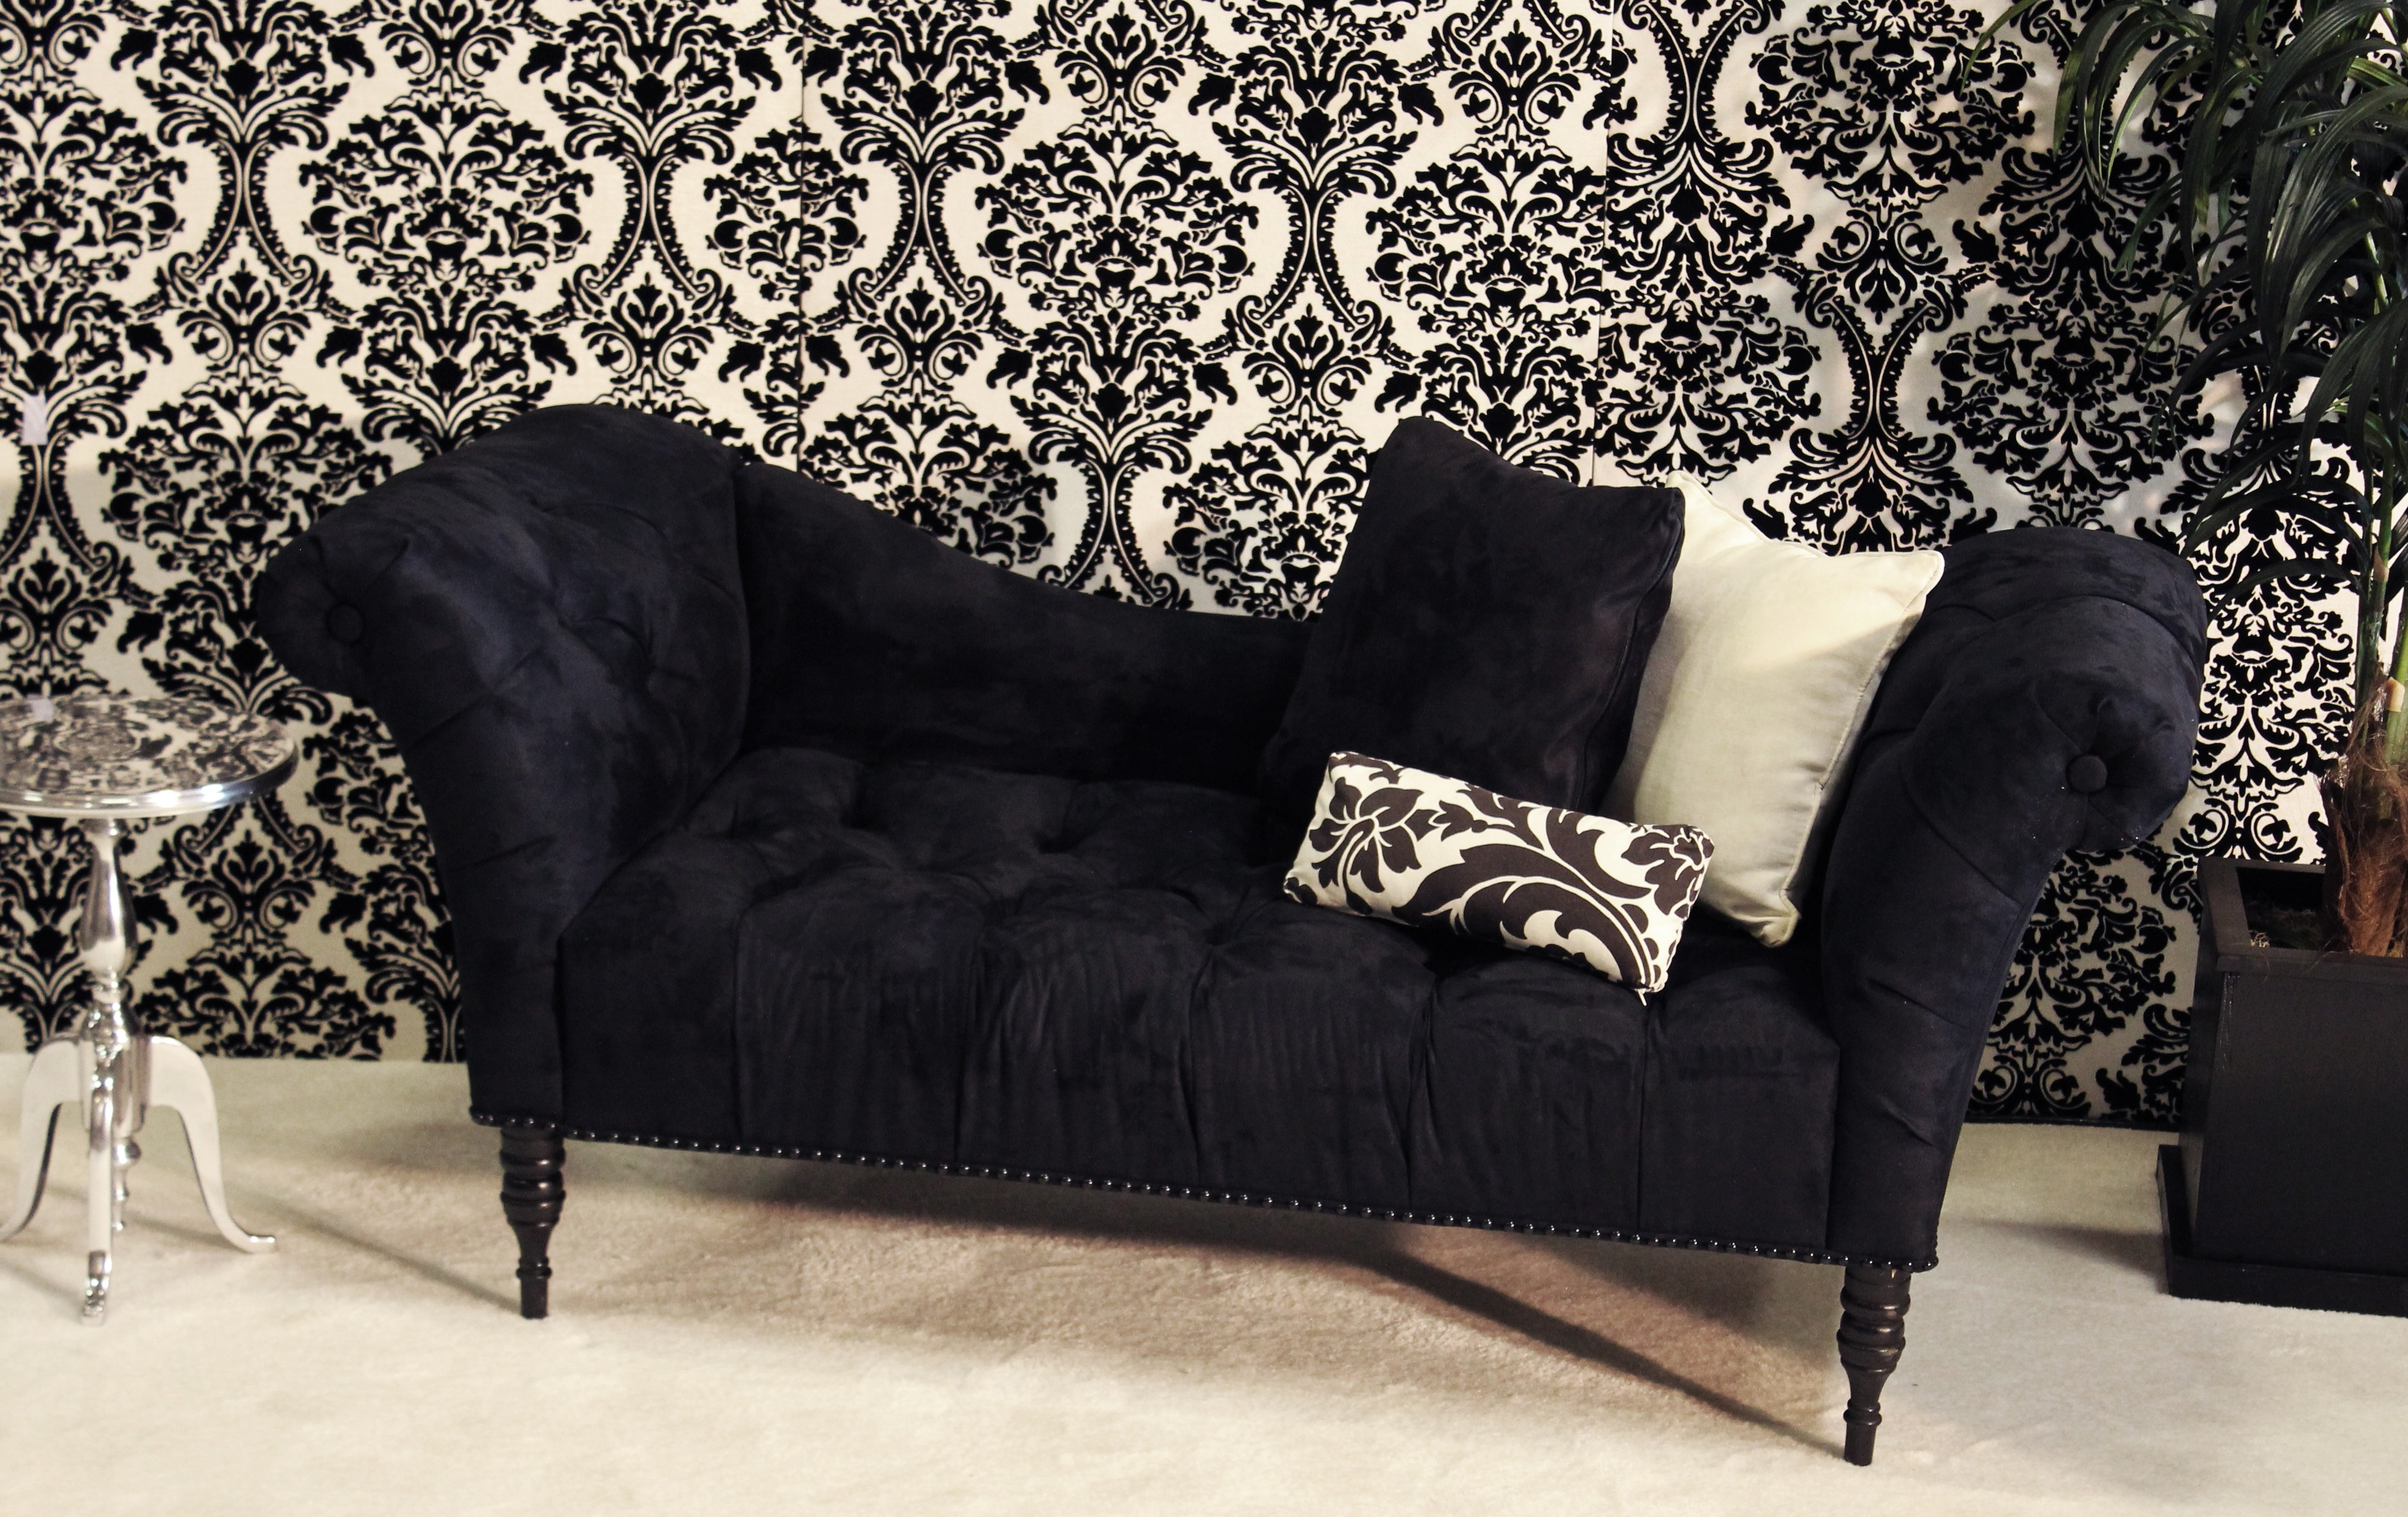 Black Chaise Lounges Within Fashionable Florenzia Black Chaise (View 10 of 15)